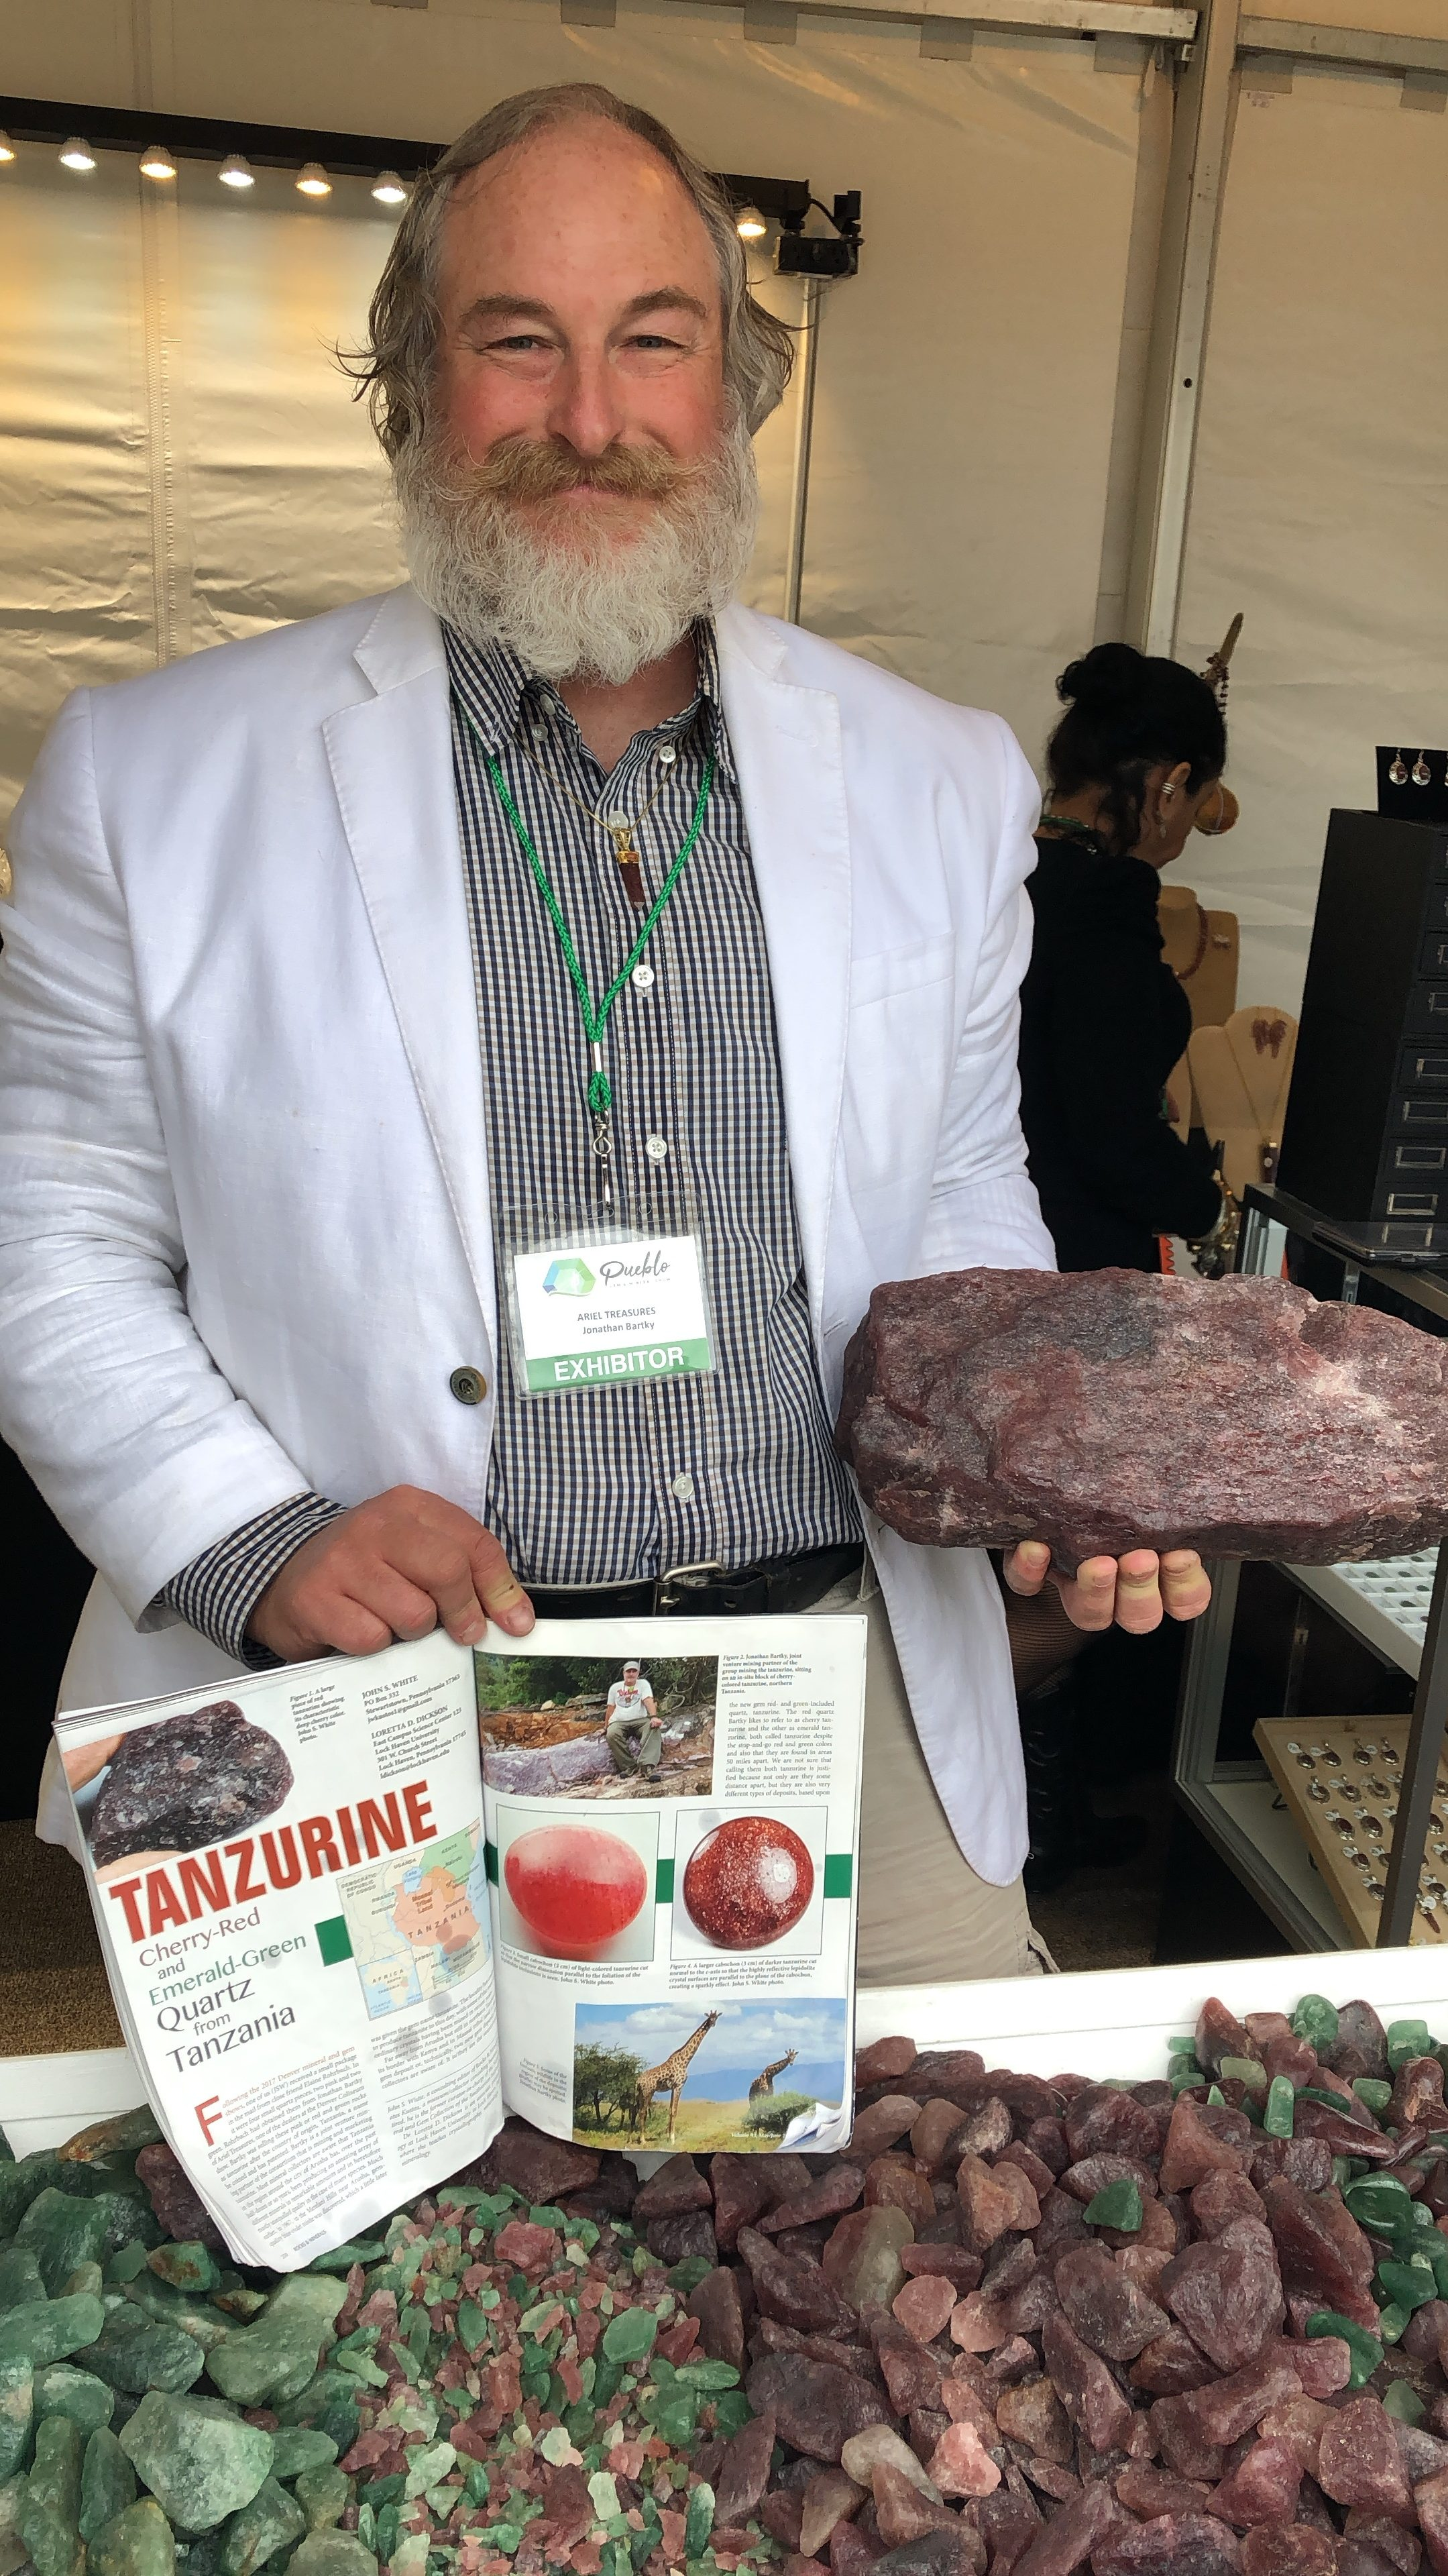 Jonathan Bartky holding large specimen of cherry tanzurine at gem show.